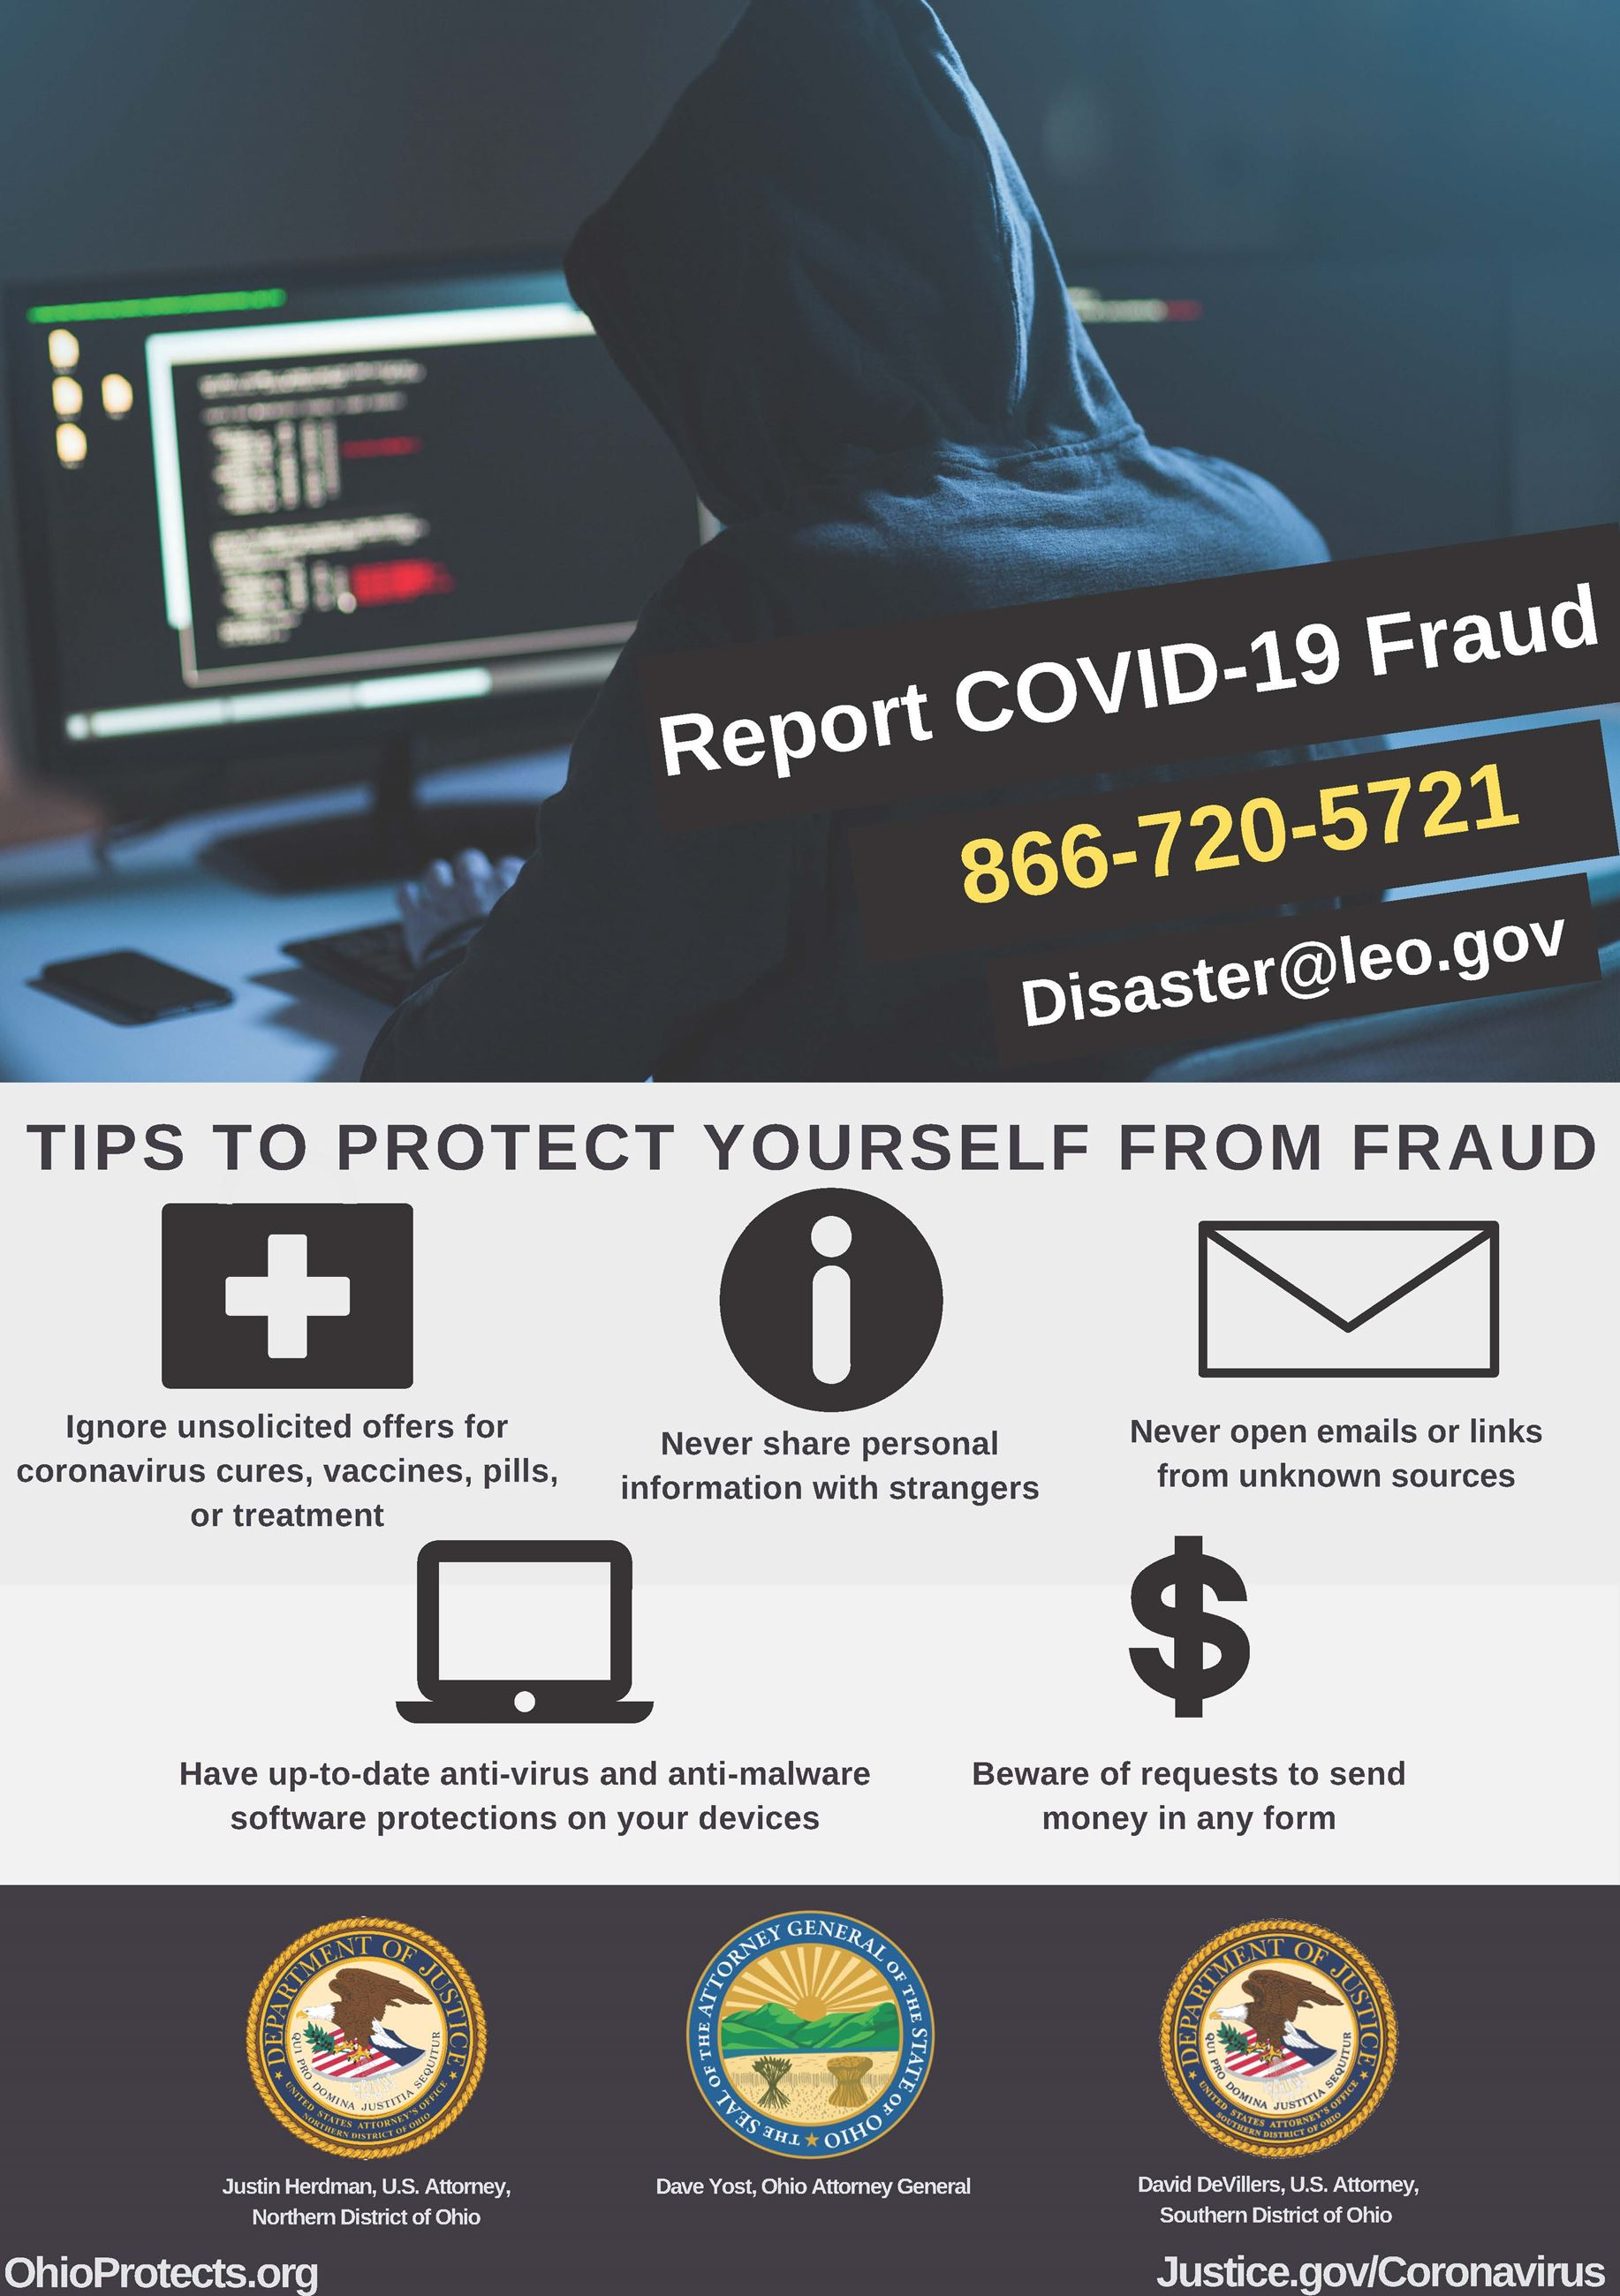 Report COVID-19 fraud flyer